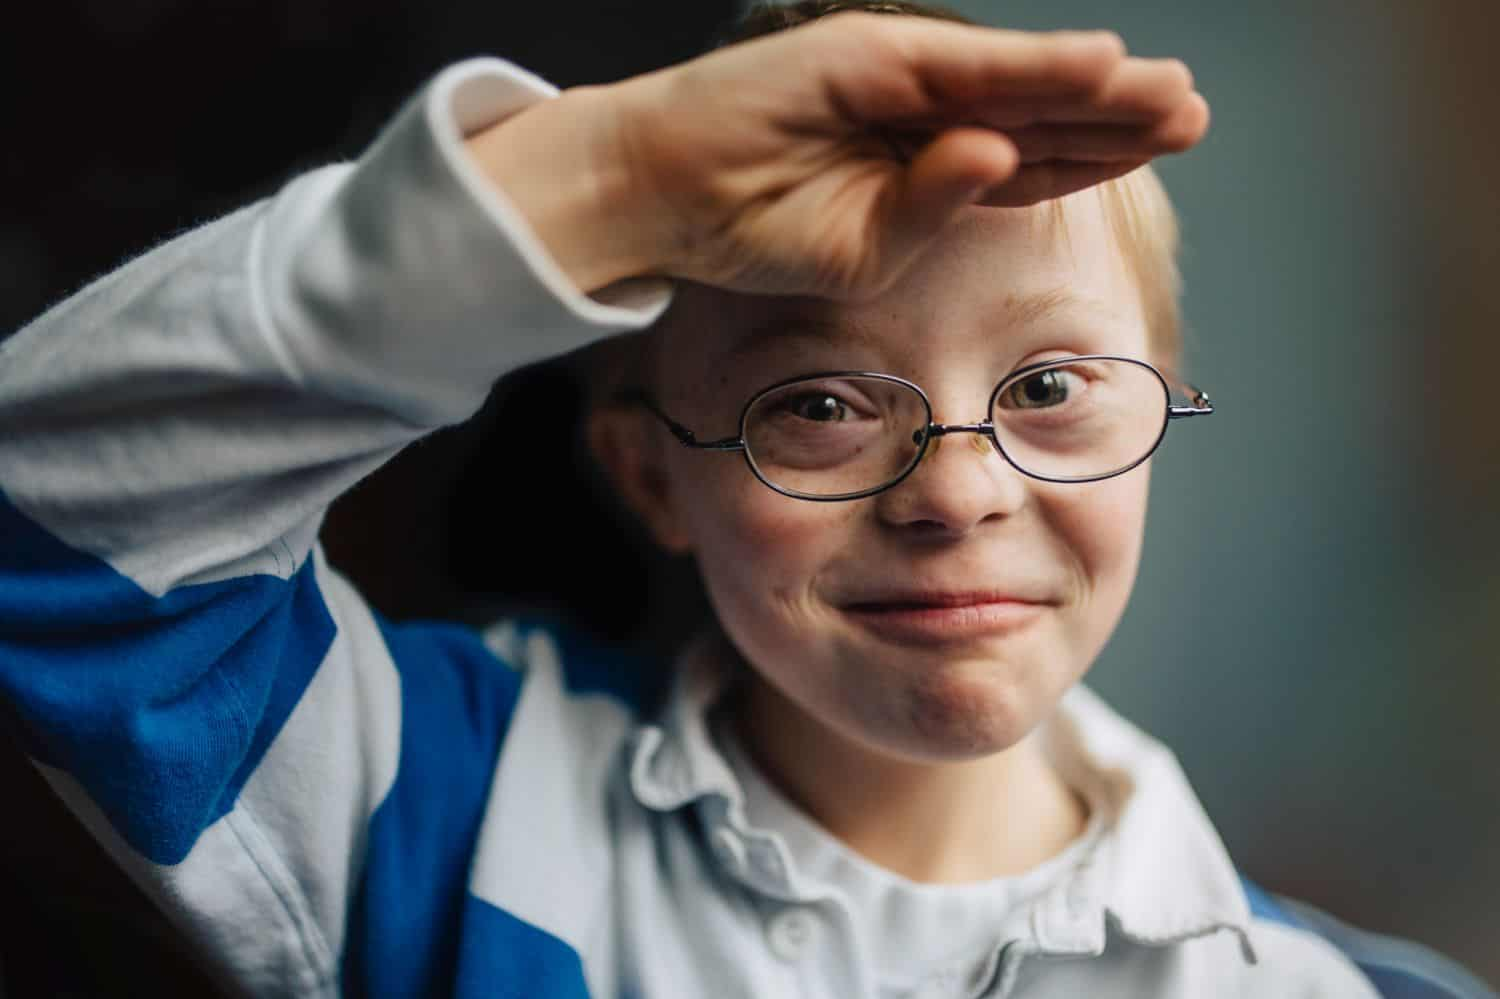 A little boy with Down syndrome grins and salutes Kate T. Parker's camera. Photographed for The Heart of a Boy